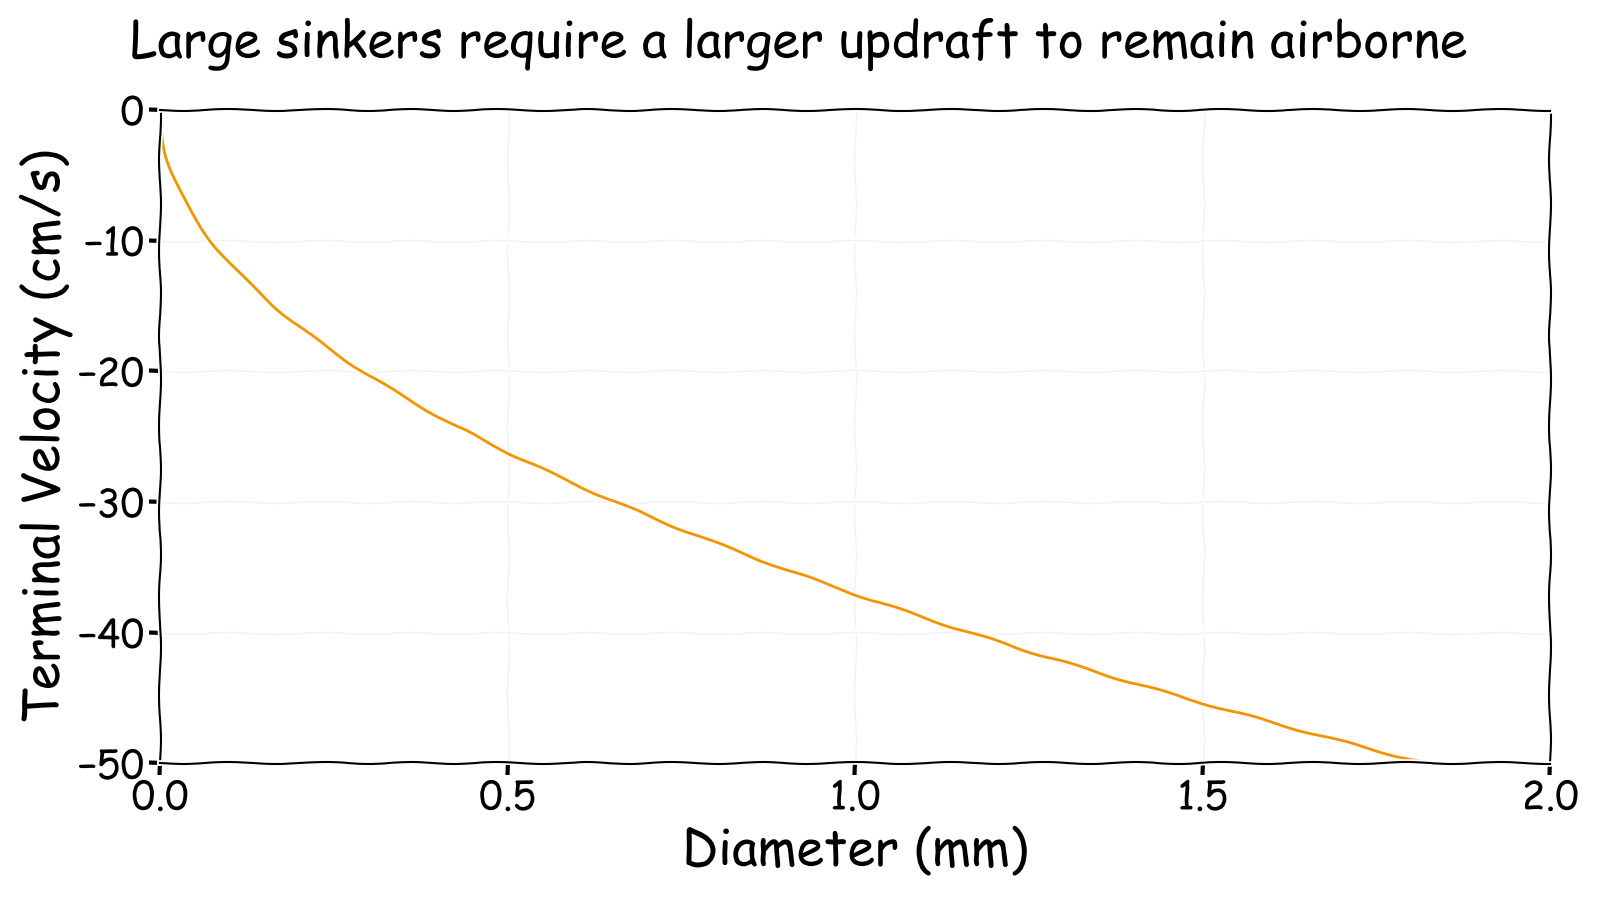 Large sinkers require larger updrafts to remain airborne